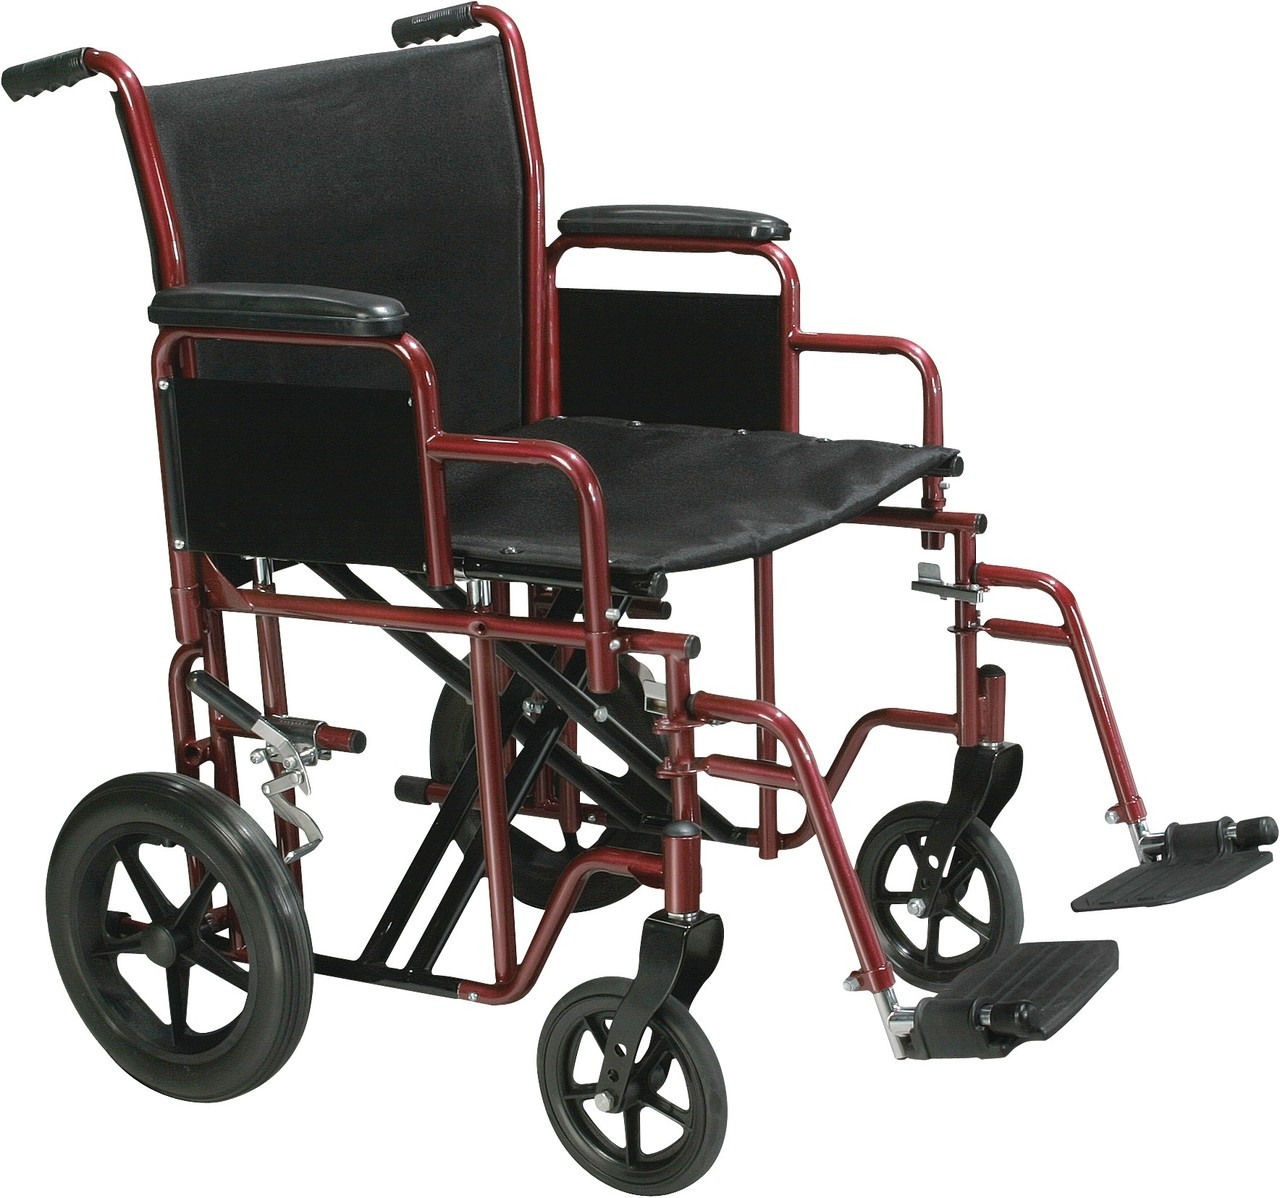 bariatric transport chair 500 lbs butterfly replacement covers outdoor heavy duty wheelchair for rent btr22 r 89118 1494514844 jpg c 2 imbypass on